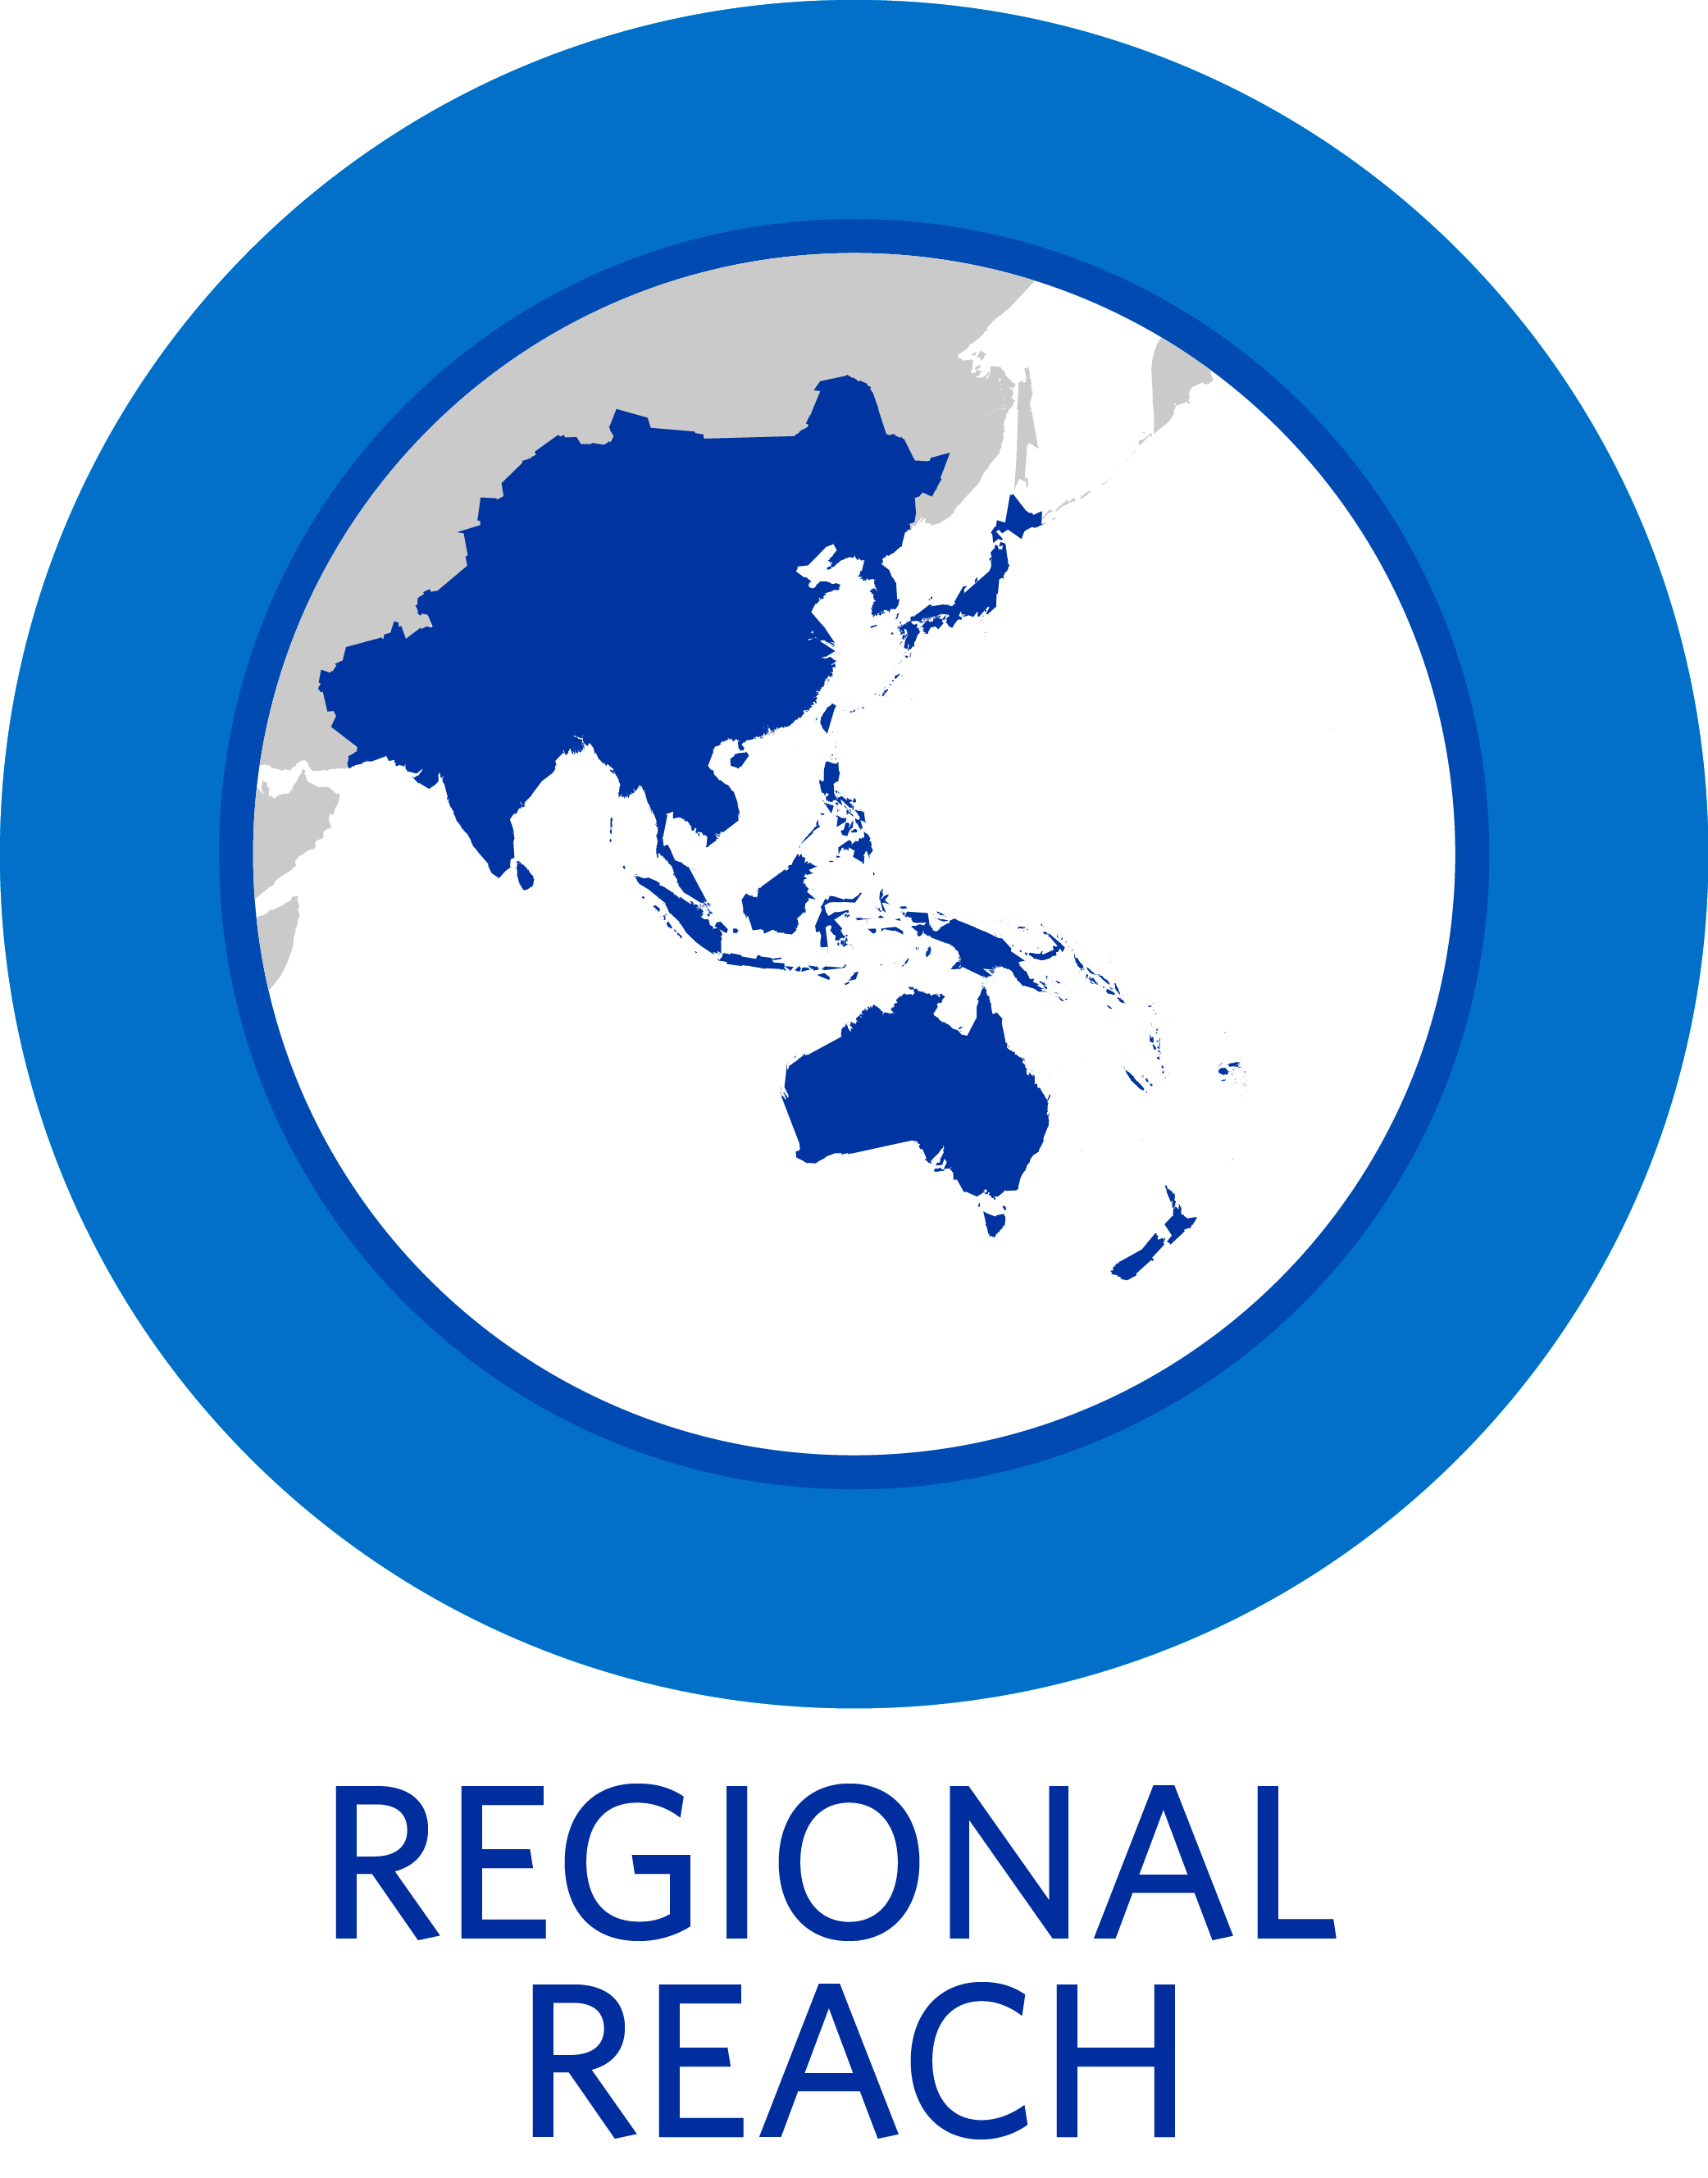 Regional Reach Across the Asia Pacific